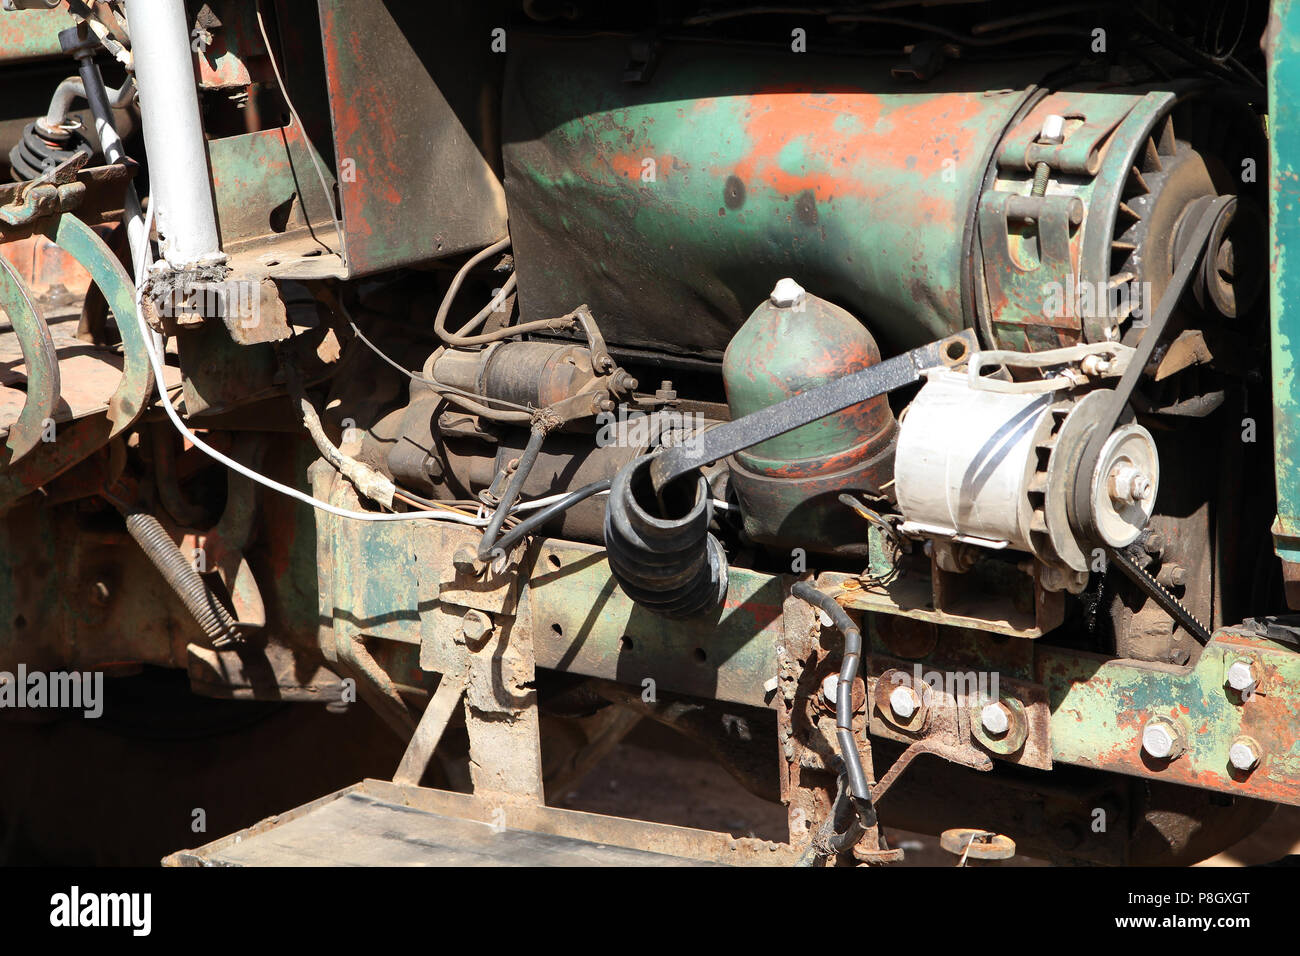 Old tractor engine with many modifications  Rusty, but